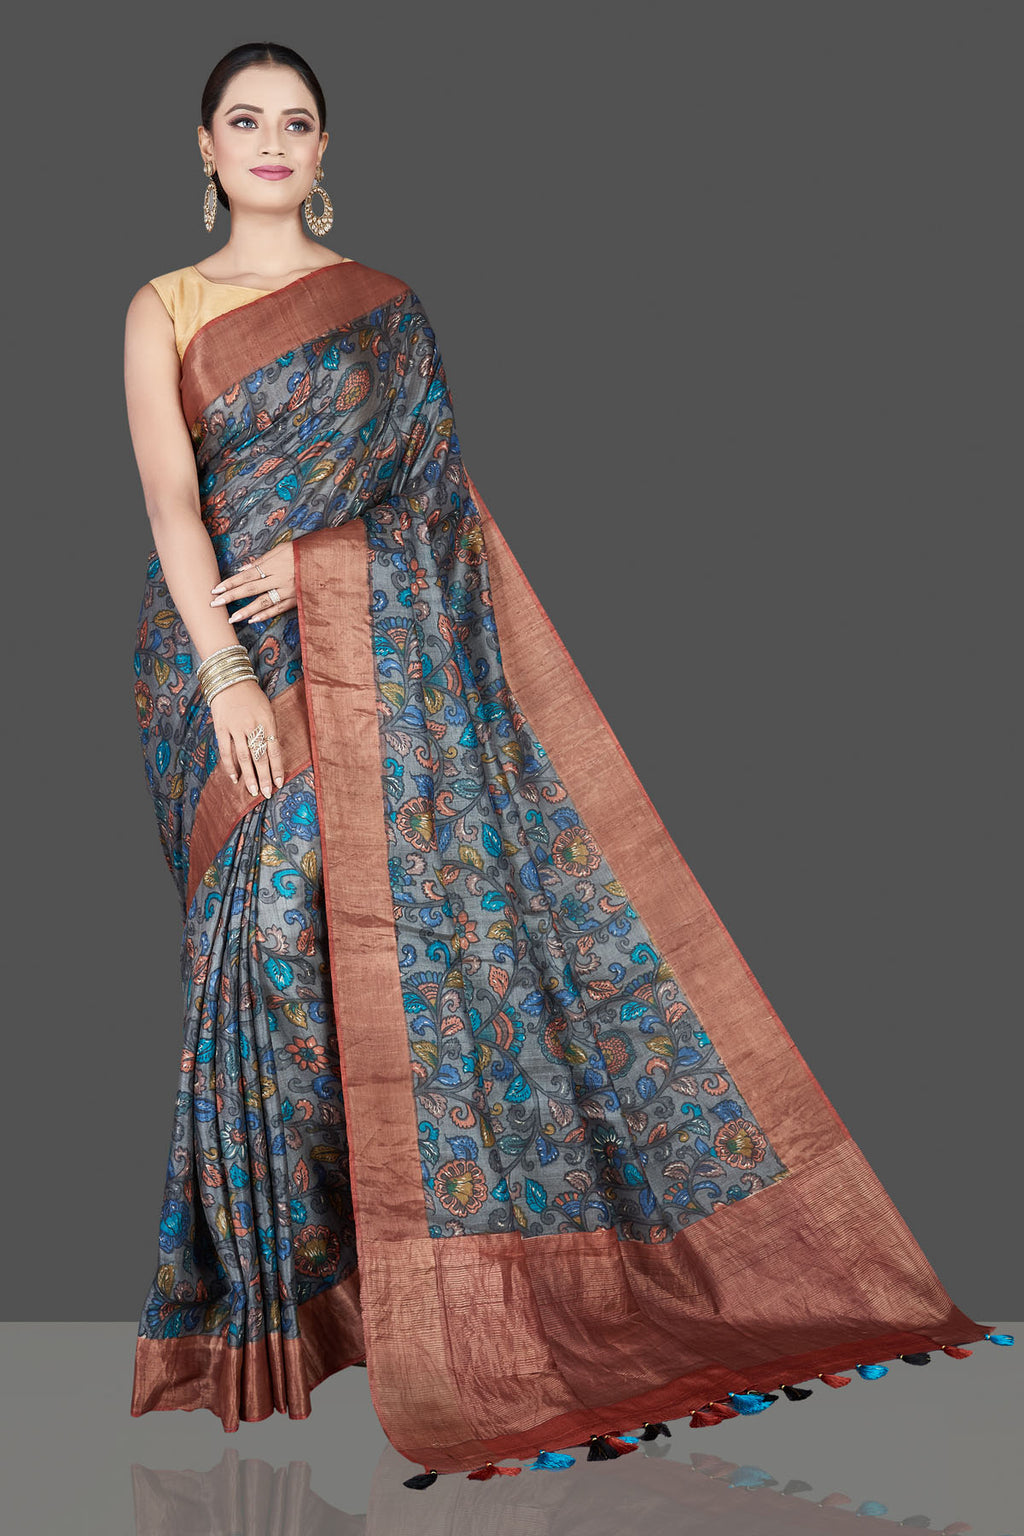 Buy beautiful grey Kalamkari print tussar silk saree online in USA with light zari border. Be the talk of the occasion in exquisite designer sarees, pure silk sarees, tussar saris, embroidered sarees, handloom sarees from Pure Elegance Indian fashion store in USA.-full view